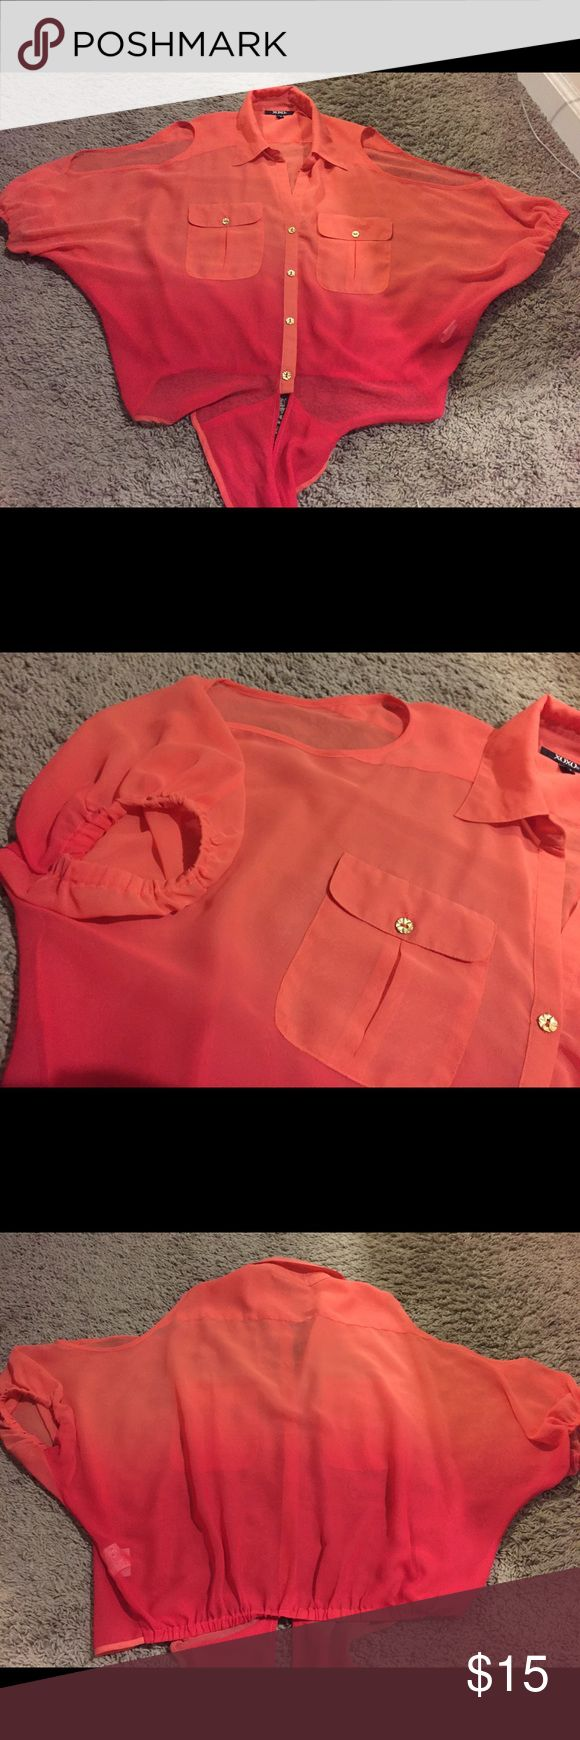 Ombré cold shoulder chiffon blouse Xoxo ombré cold shoulder chiffon/sheer button down blouse. Orange/pink. Size: S great condition. From pet free-smoke free home. XOXO Tops Button Down Shirts